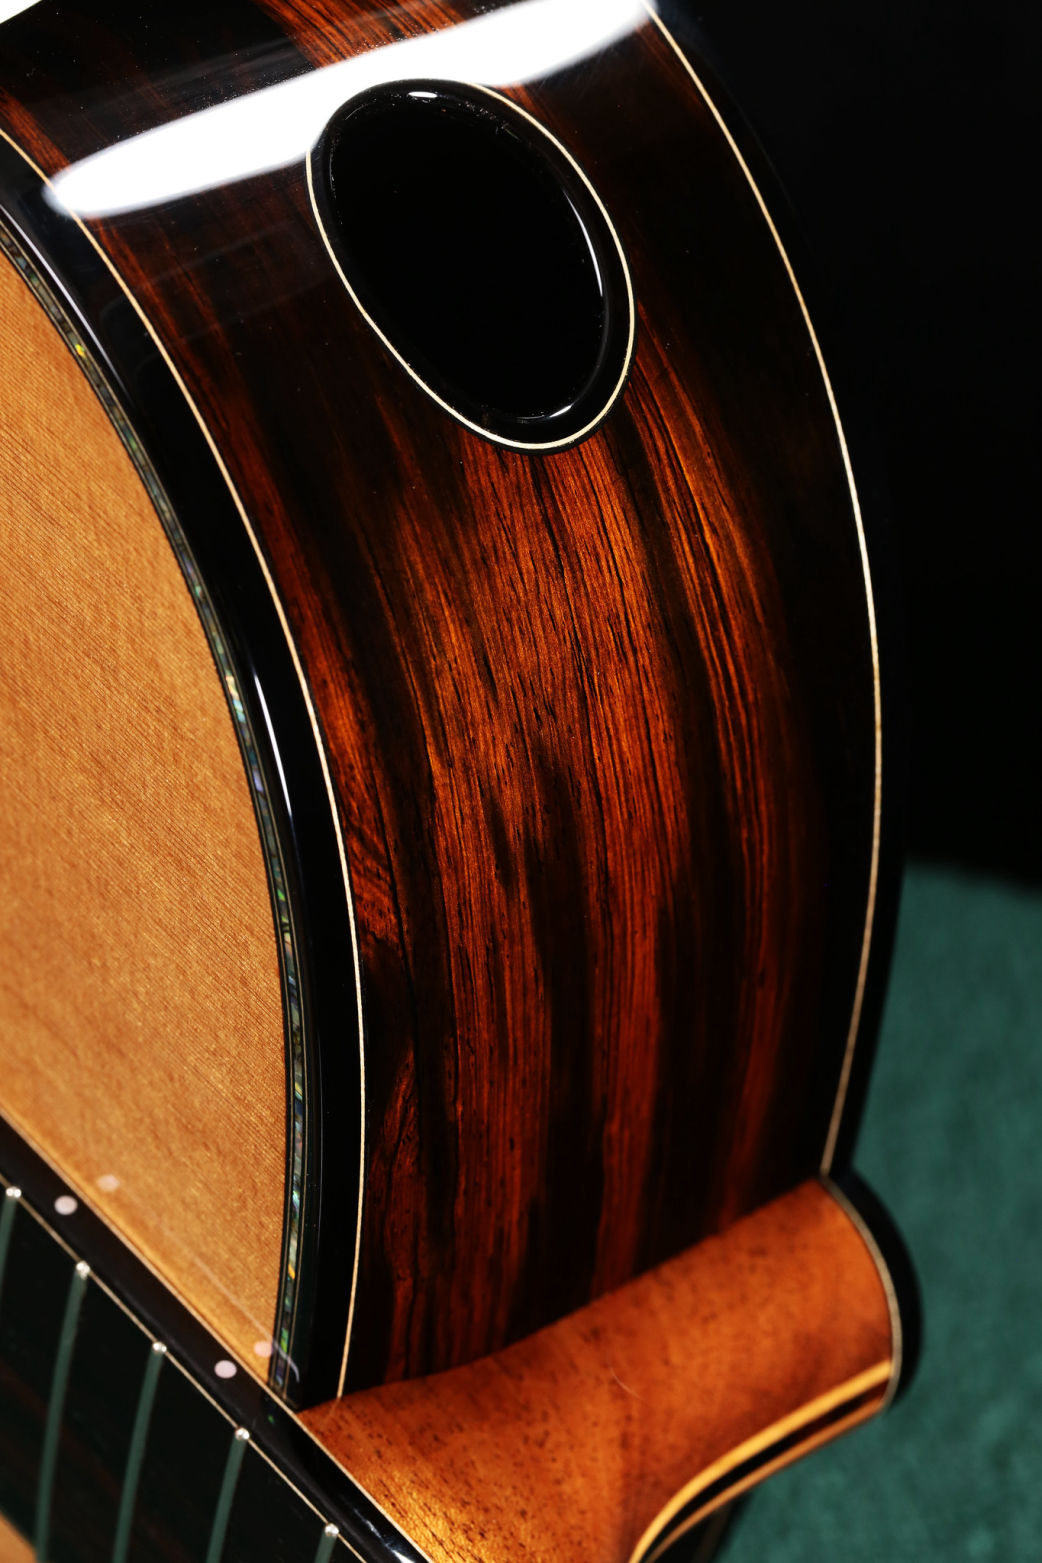 Oval Sound Port bound in Ebony with Maple Purfling Line